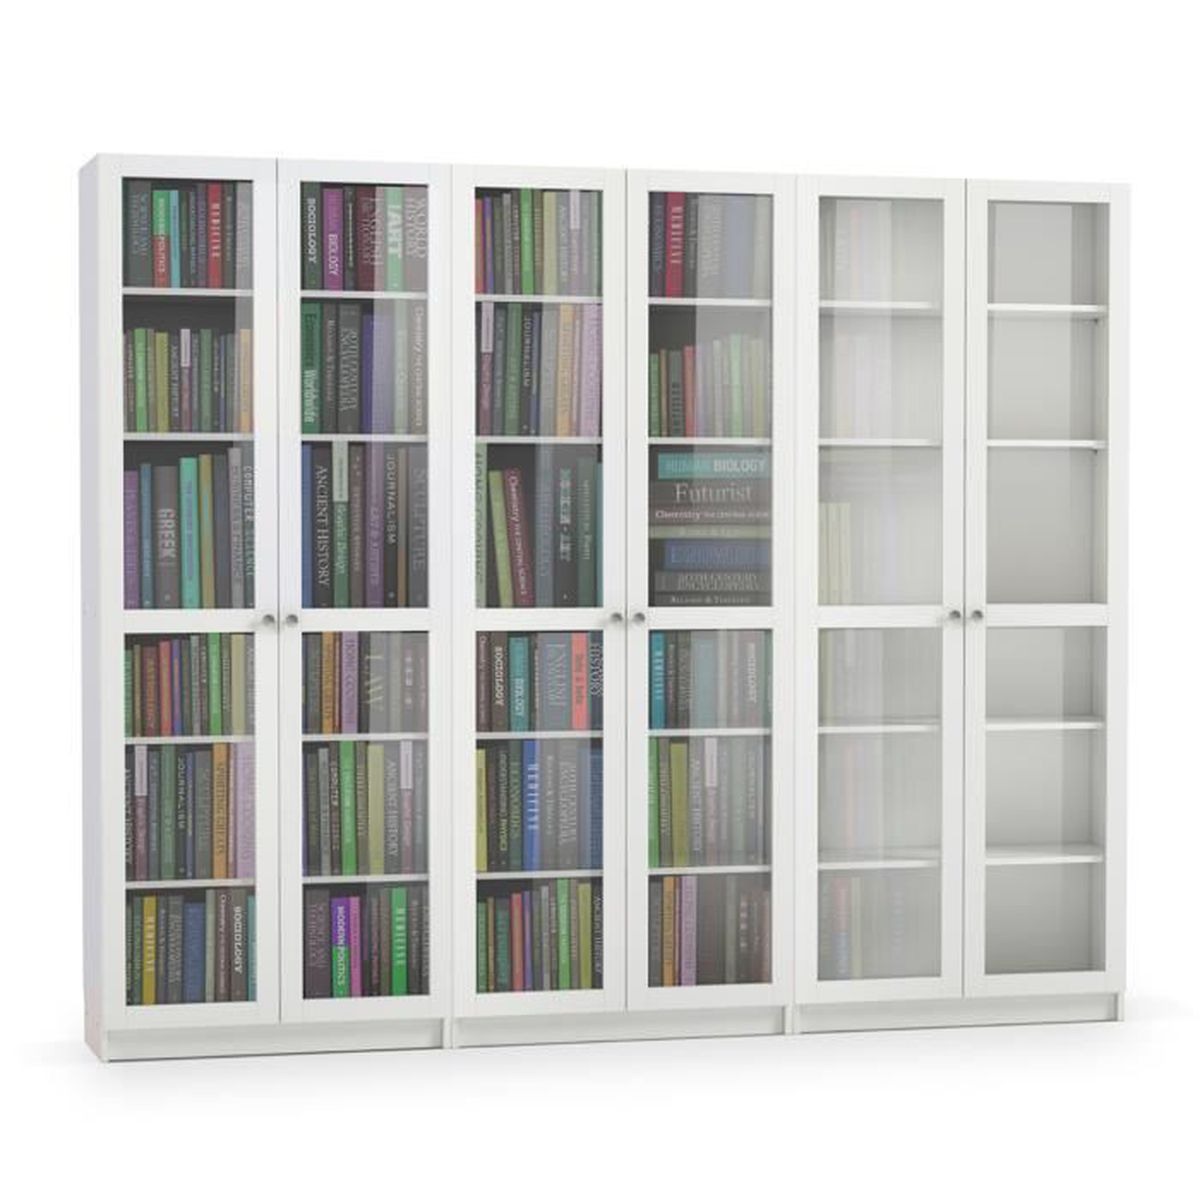 biblioth que coloris blanc en mdf et verre dim 200 x 240 x 27 cm achat vente. Black Bedroom Furniture Sets. Home Design Ideas